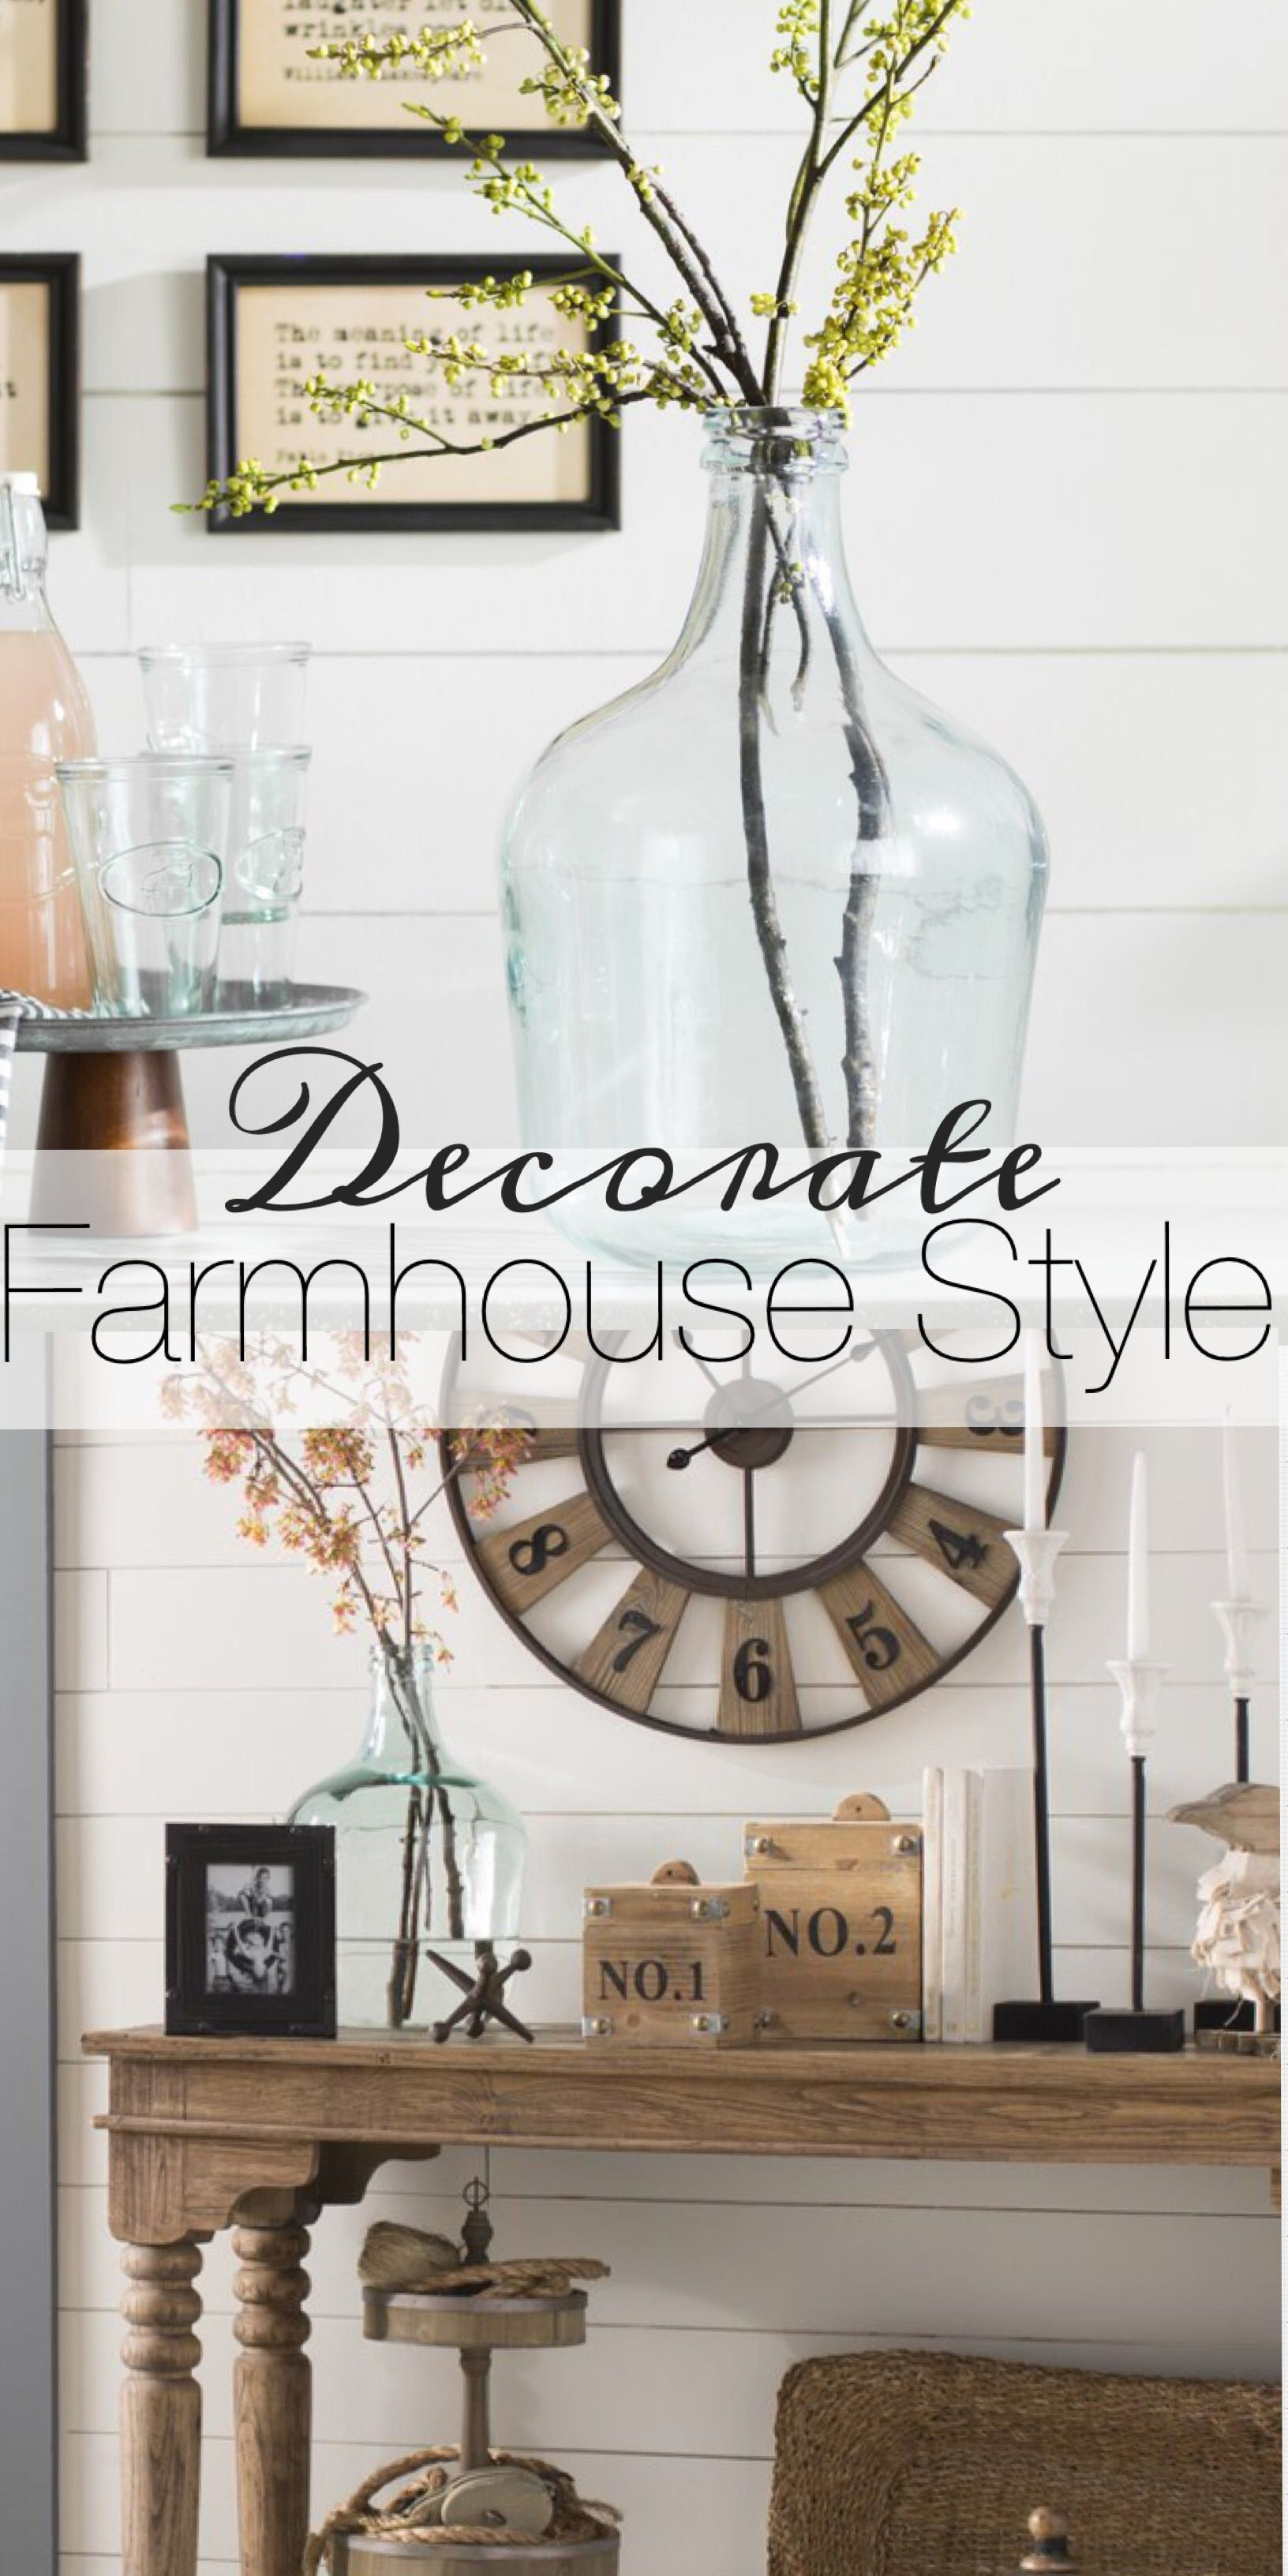 Decorate Farmhouse Style ad Love these big